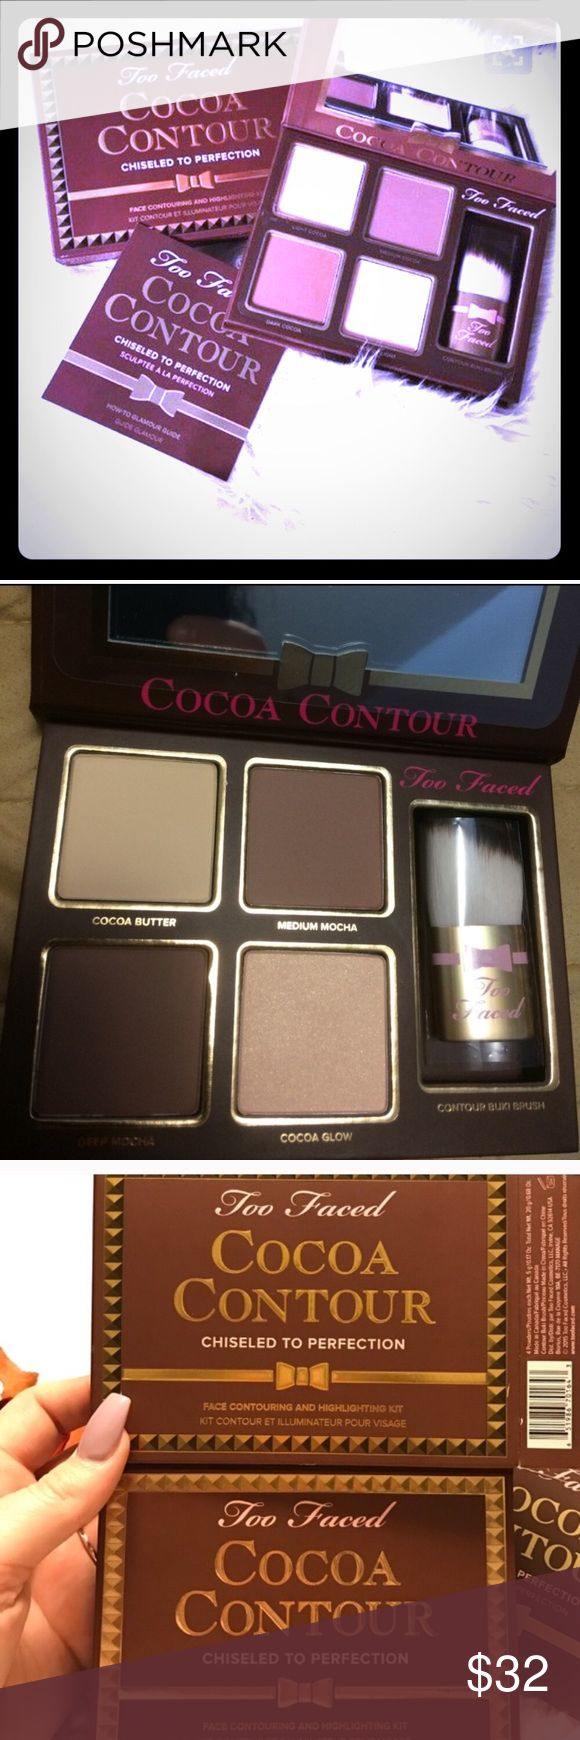 PRICE FIRM! Too Faced😍 Cocoa Contouring Kit This beautifully crafted cocoa-scented contouring palette, in Medium To Dark shade,  defines the natural curvatures of your face with a delectable chocolate scent finish!! THIS IS BRAND NEW, NEVER OPENED (ONLY FOR PICS) AND NEVER USED! UNTOUCHED! 100% AUTHENTIC! Courtesy of my aunt, SSA at Sephora!! Too Faced Makeup Face Powder